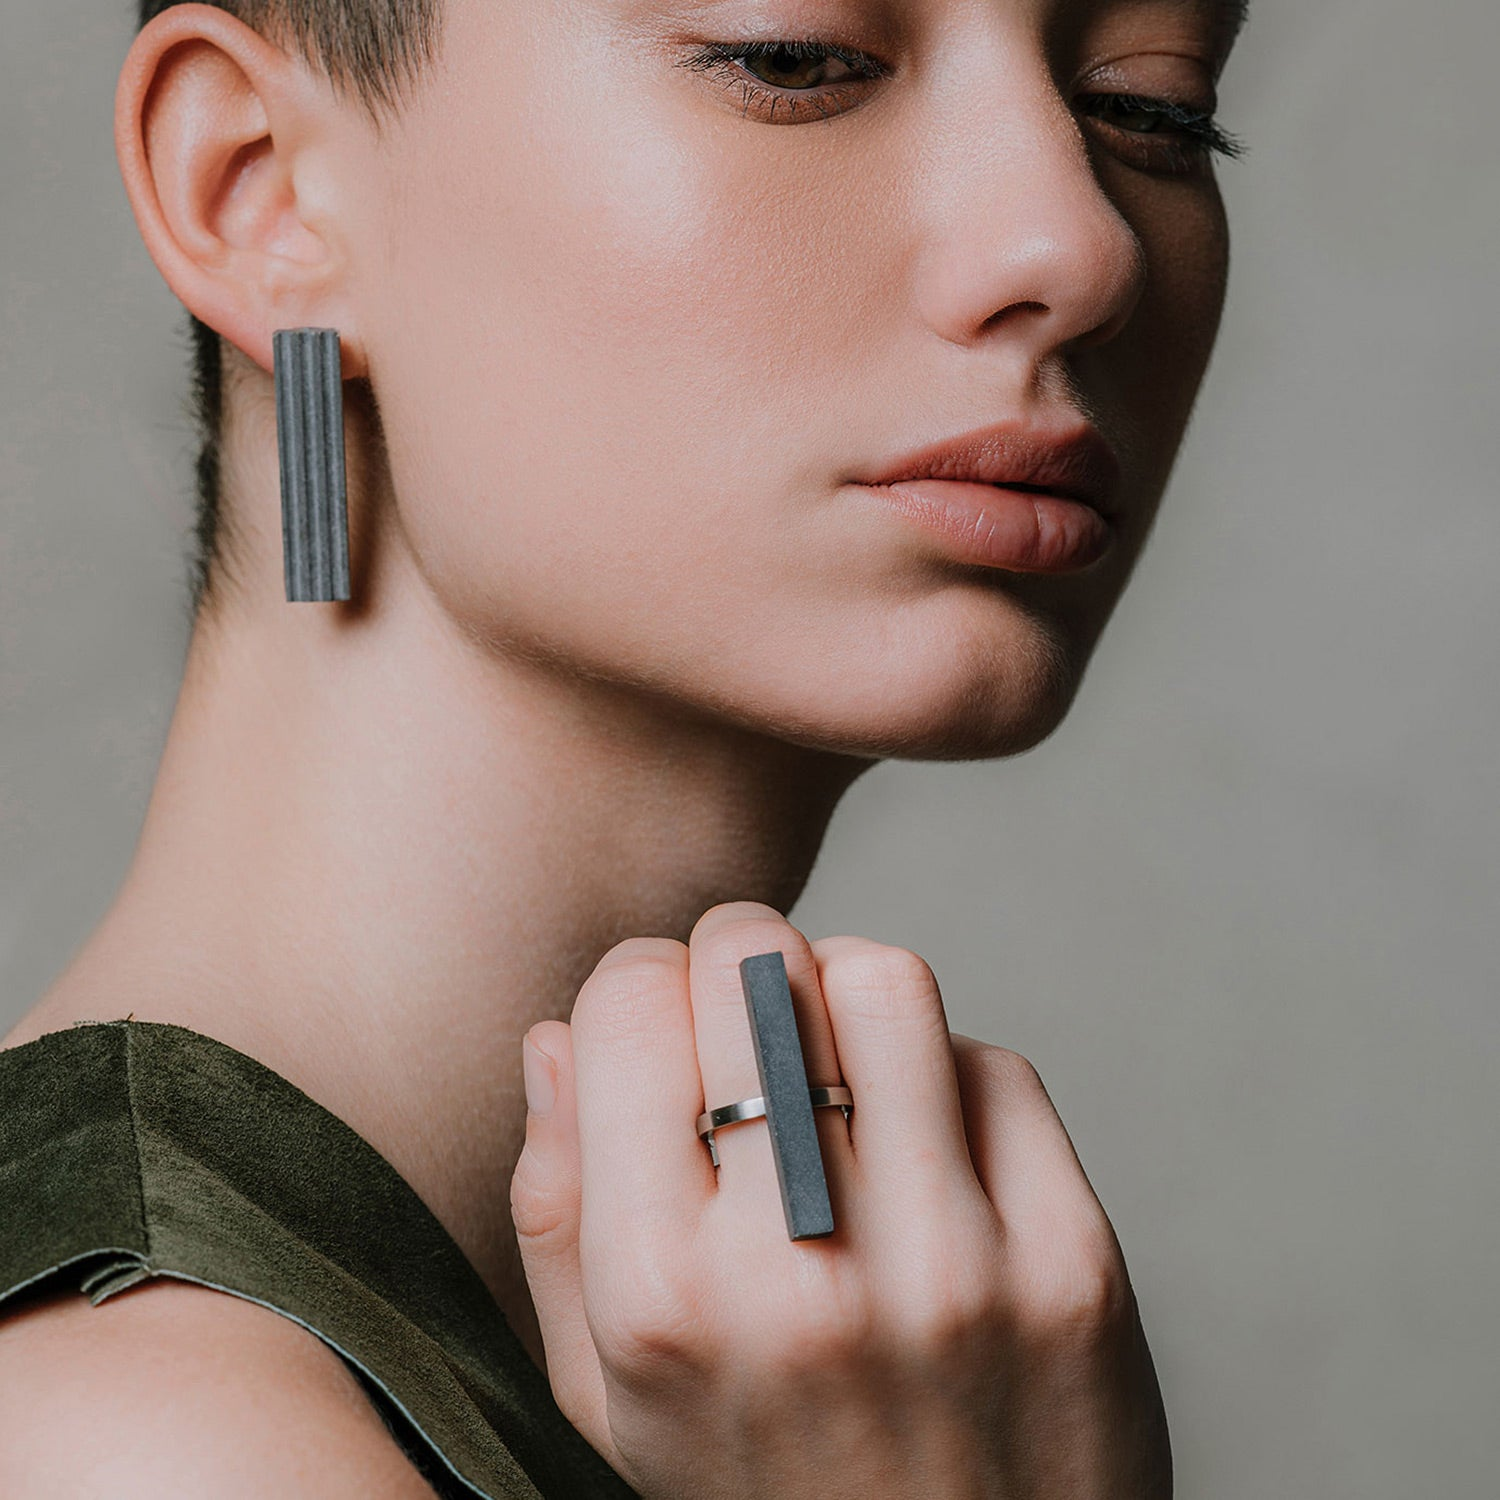 Female Model Wearing Minimal Concrete Jewelry